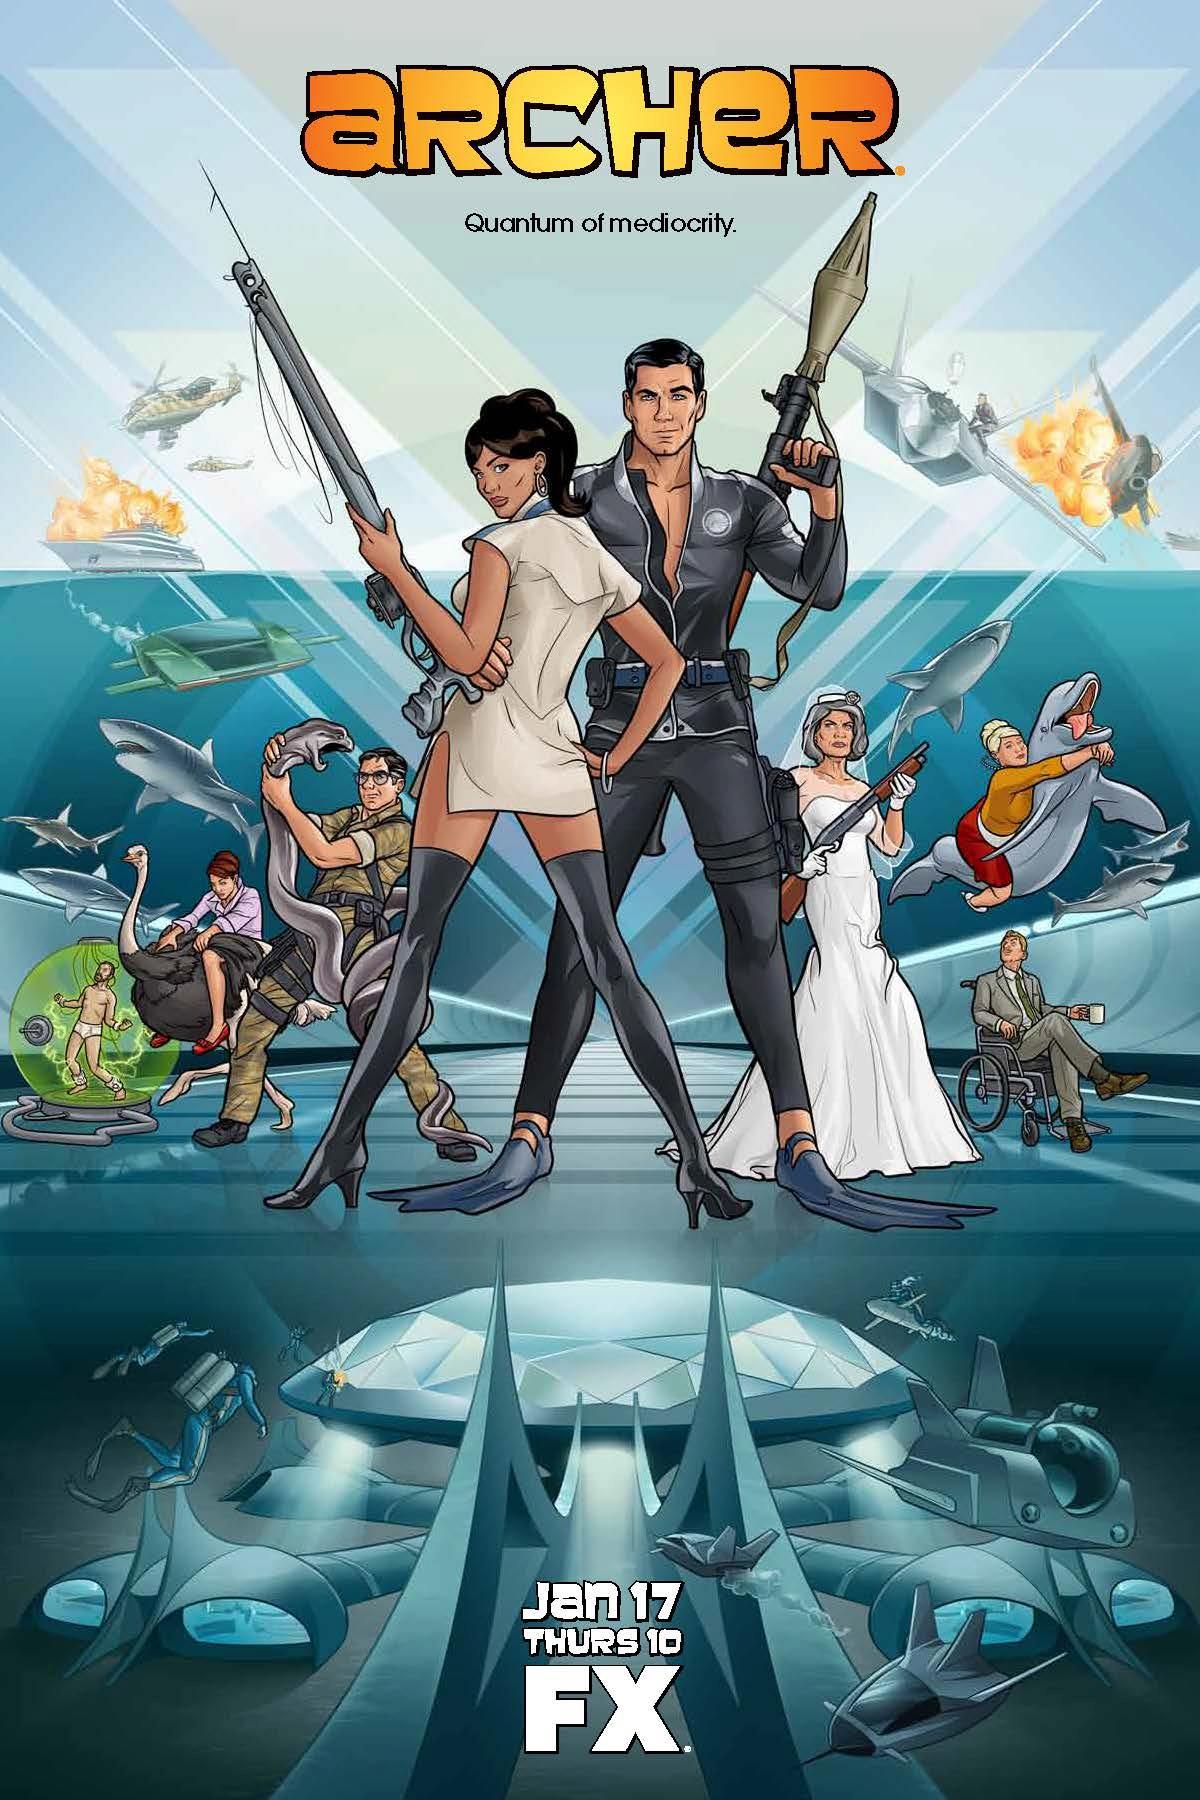 Adult Full Movie Tube archer -one of the funniest, best things on the tube -and on